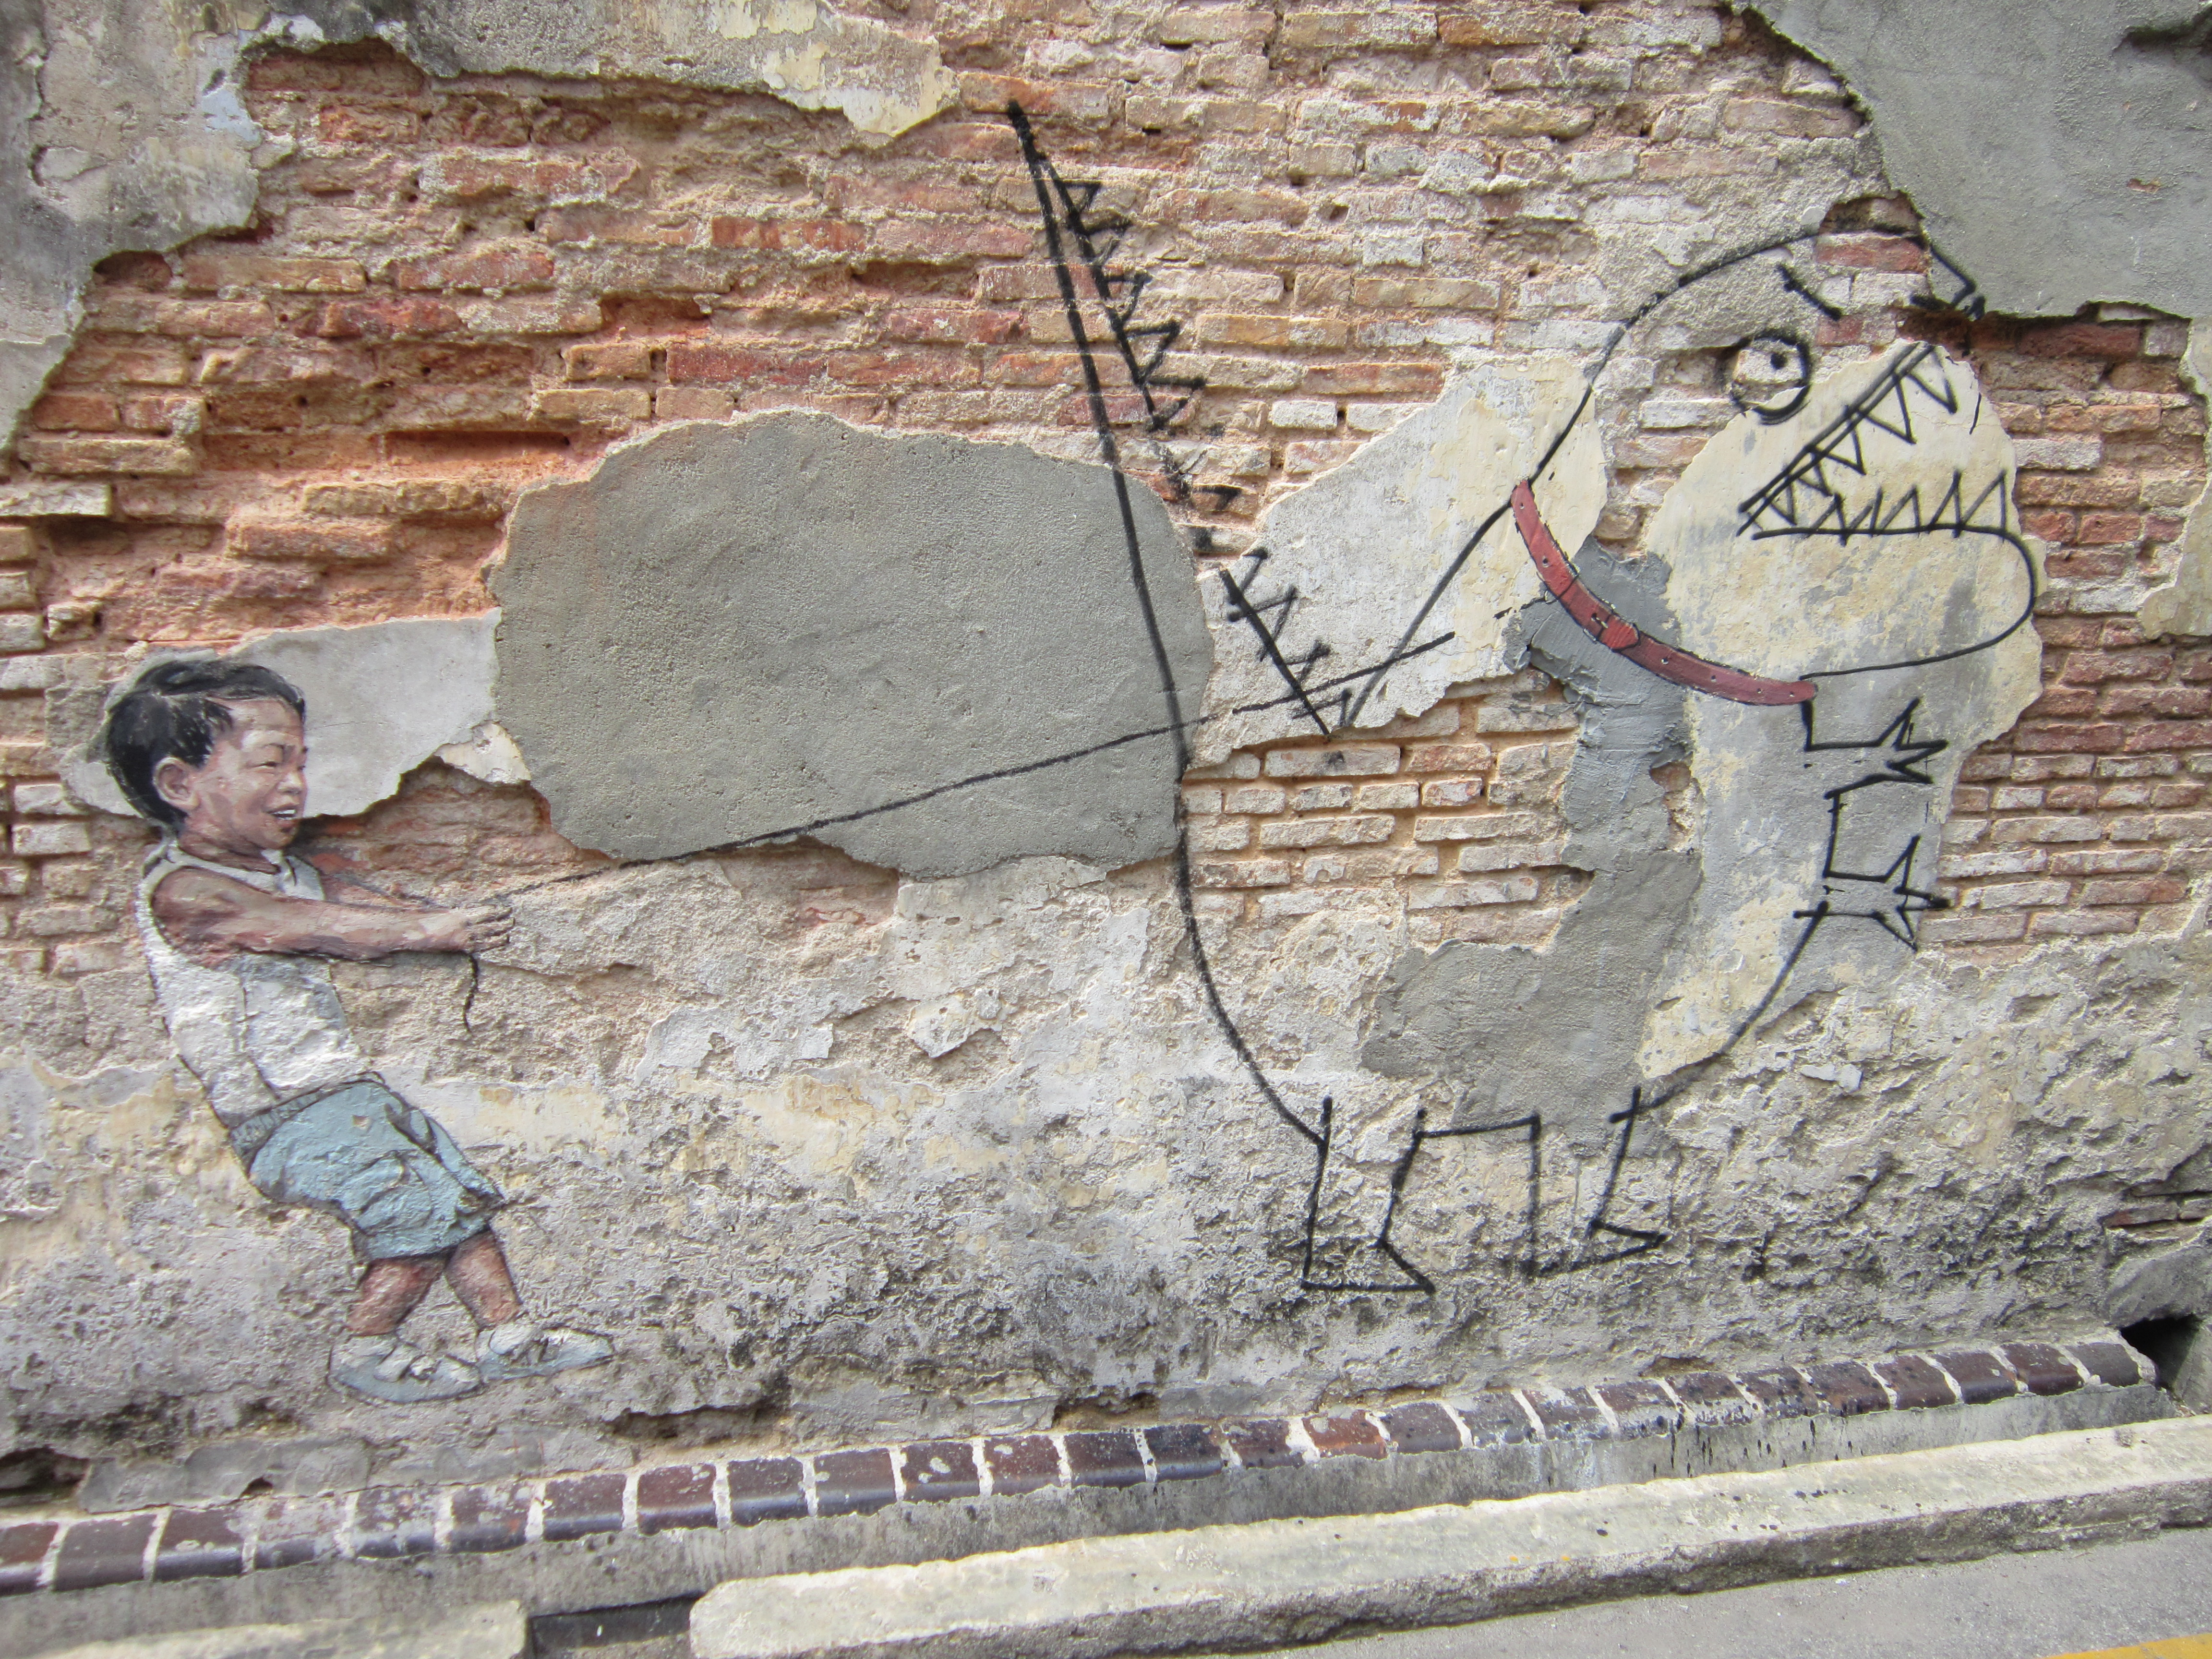 Penang Street Art Little Boy with Pet Dinosaur